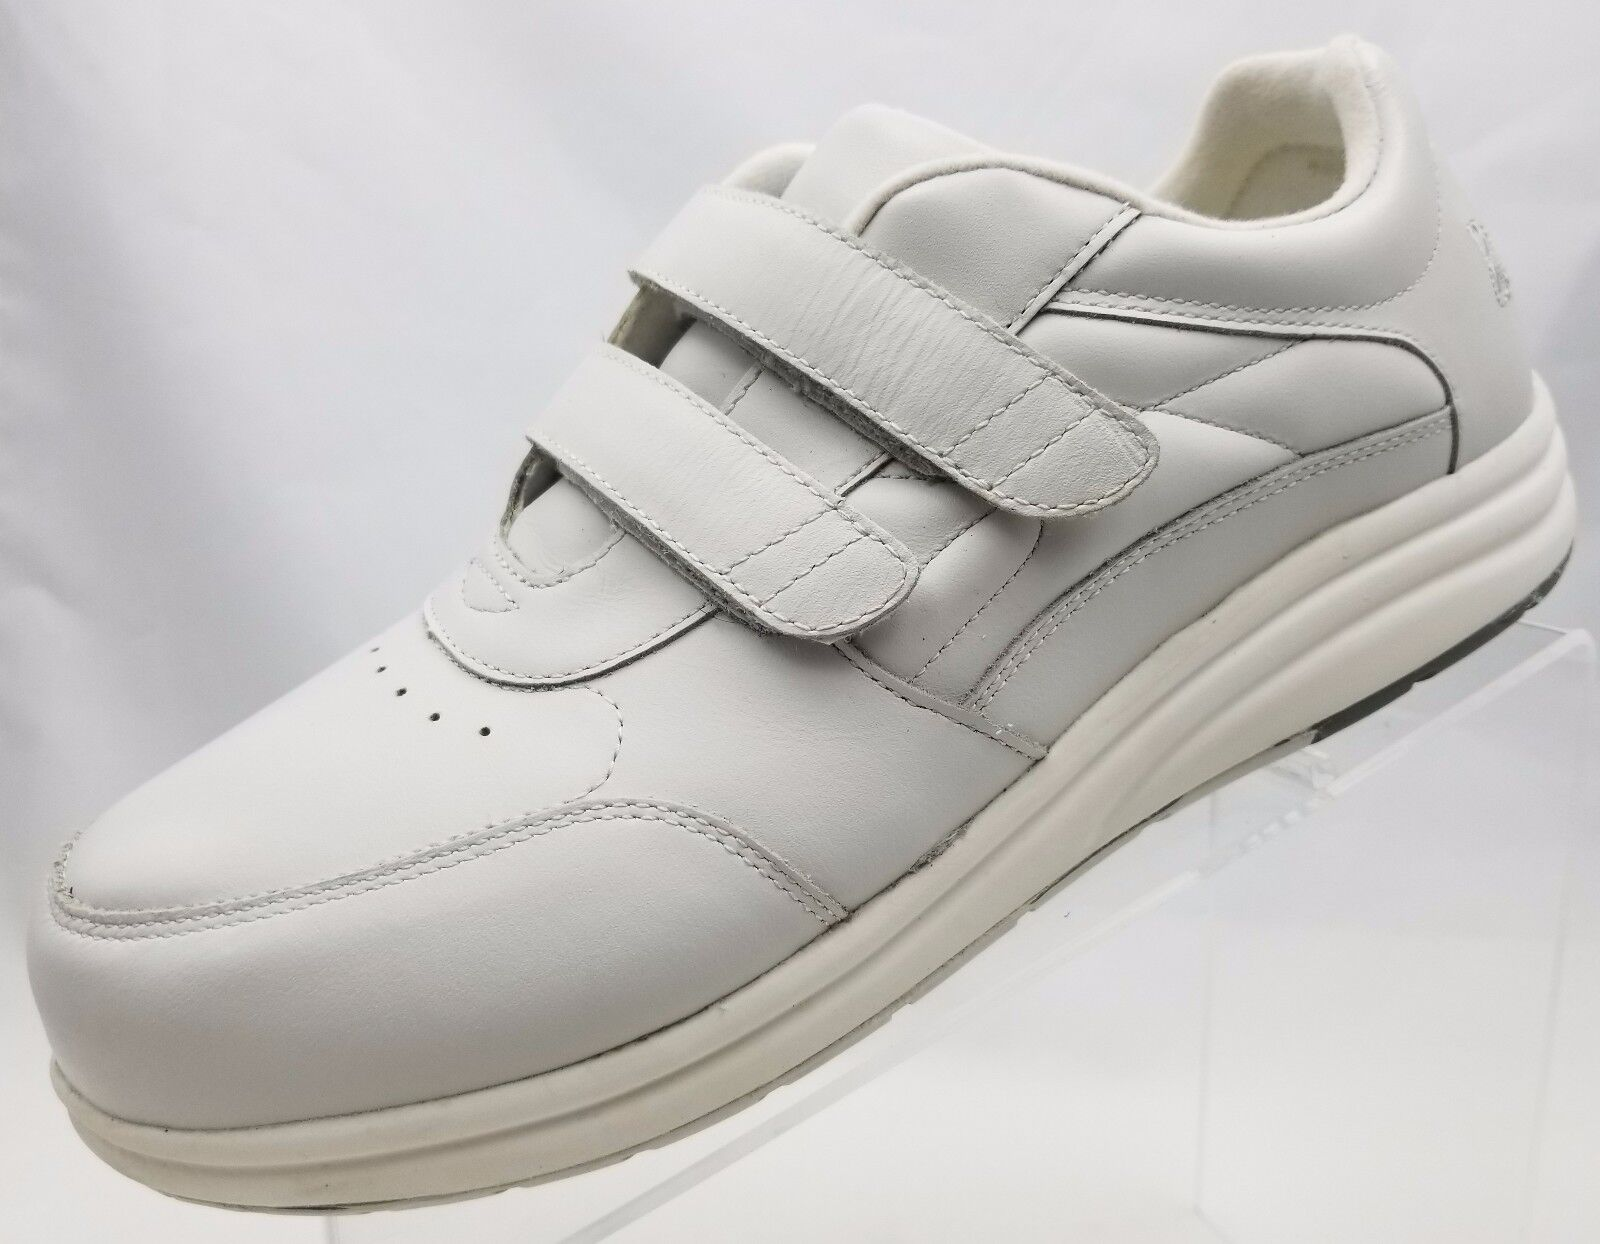 P W Minor Performance Walker Orthotic Diabetic Womens White Leather shoes Sz 10